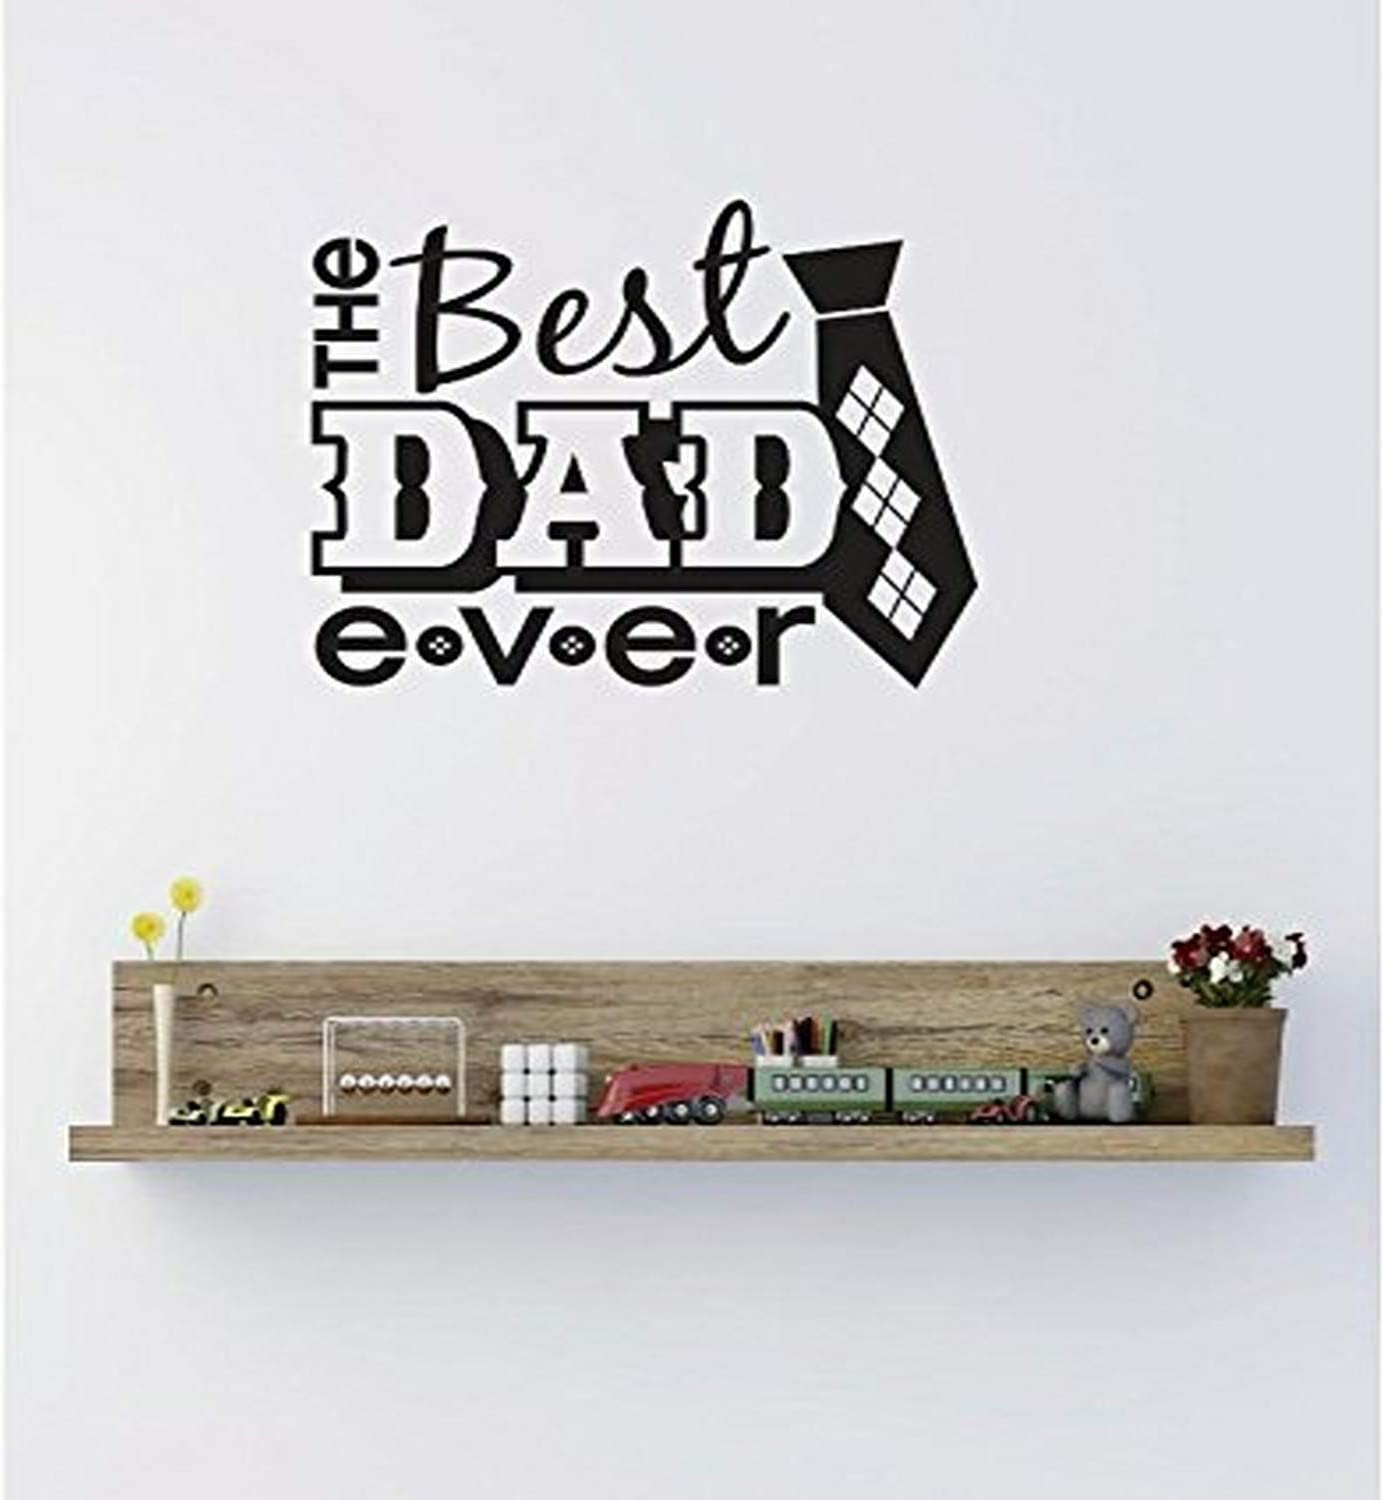 18 x 18 Black Design with Vinyl RE 4 C 2404 The Best Dad Ever Image Quote Vinyl Wall Decal Sticker